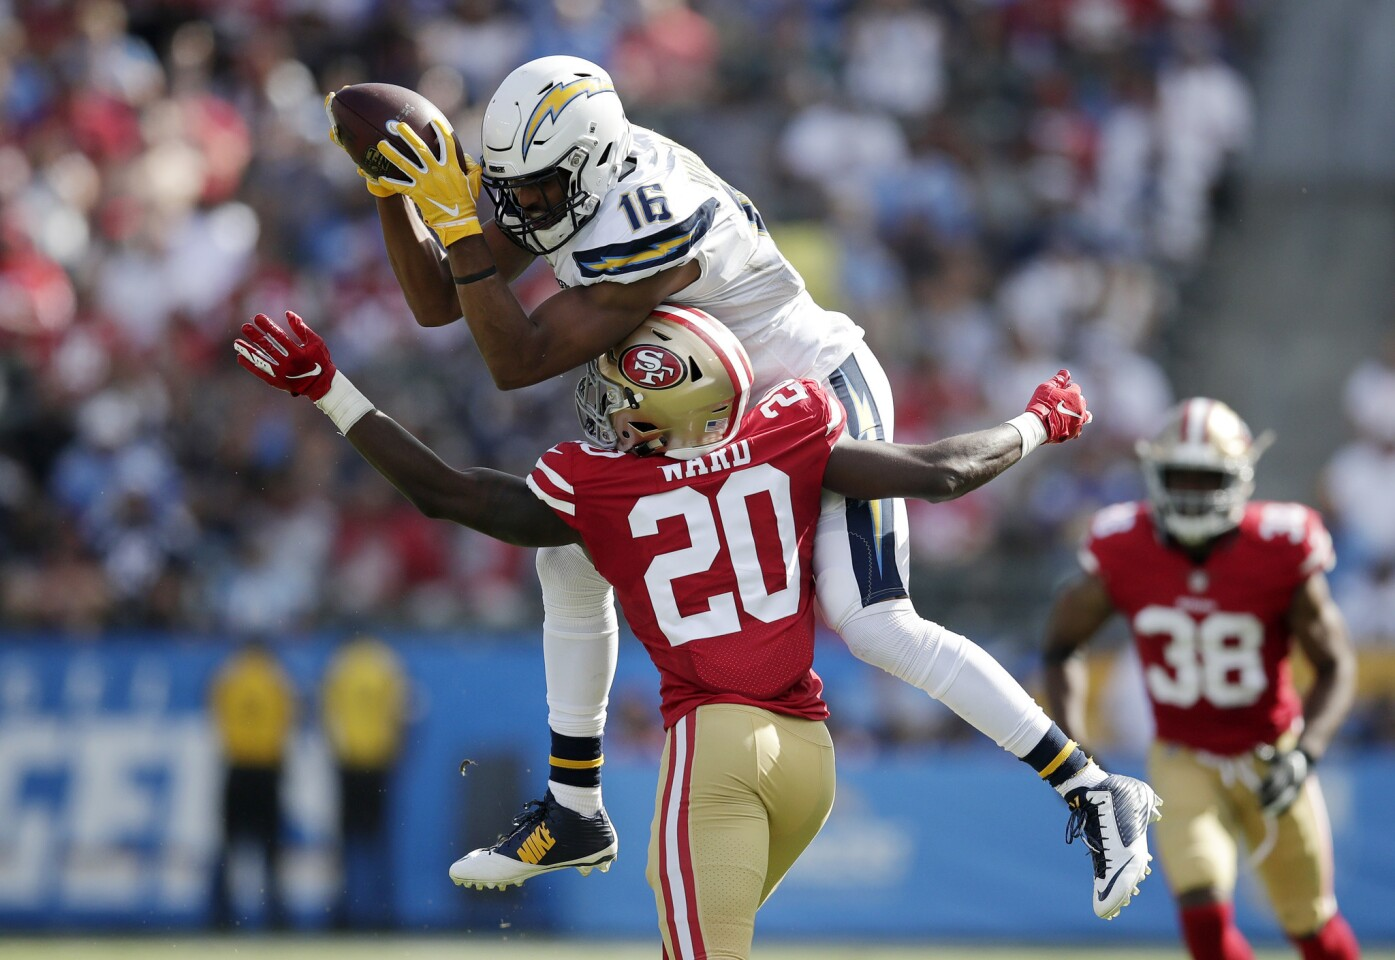 Los Angeles Chargers wide receiver Tyrell Williams, top, makes a catch while under pressure from San Francisco 49ers defensive back Jimmie Ward during the second half of an NFL football game, Sunday, Sept. 30, 2018, in Carson, Calif.